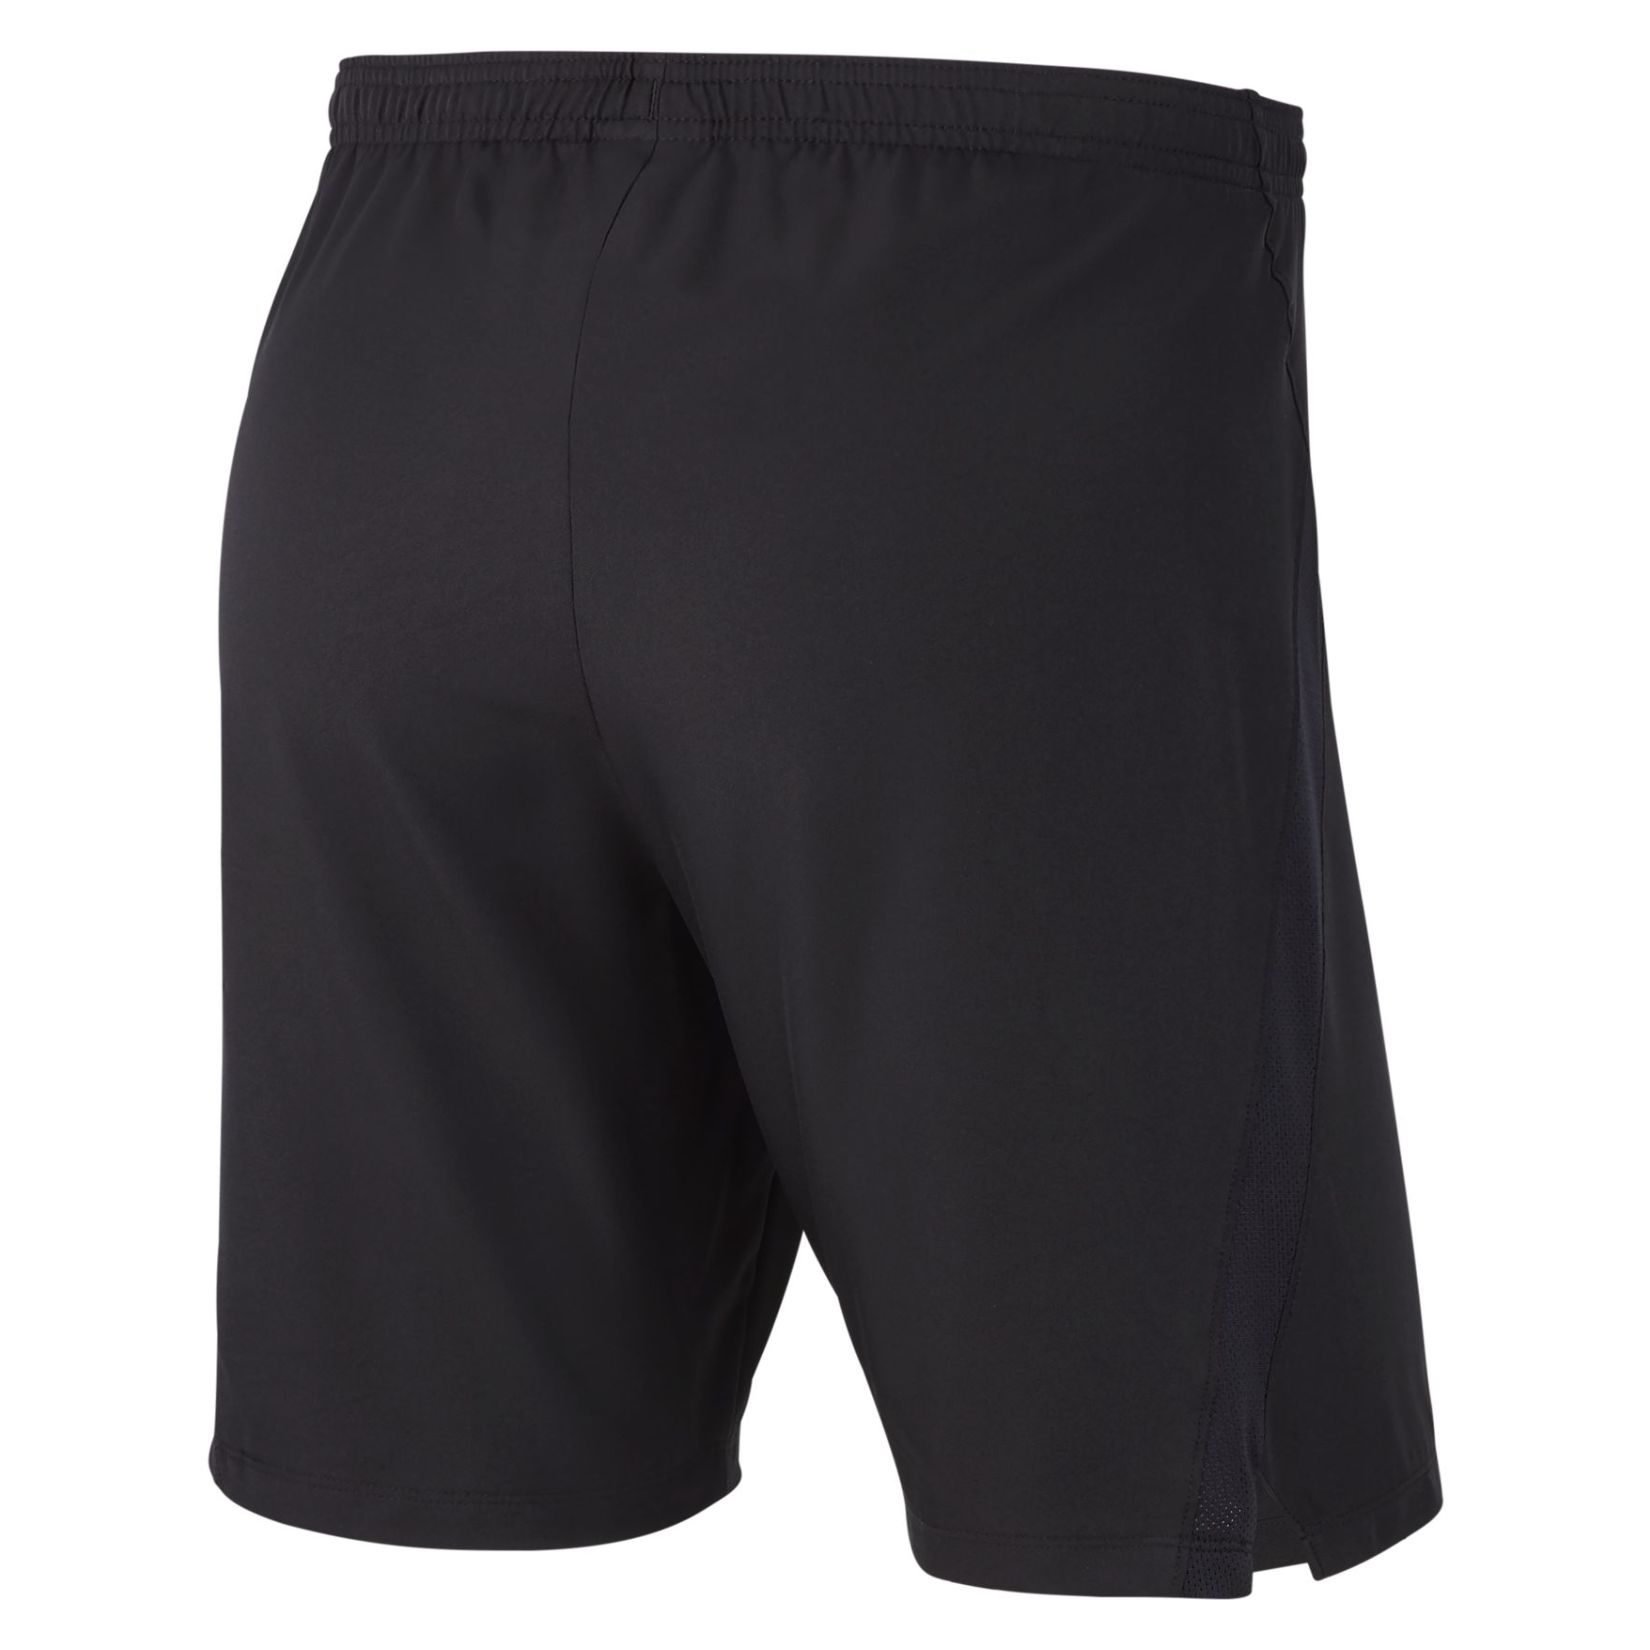 Nike Dri-fit Laser Iv Woven Short Without Brief